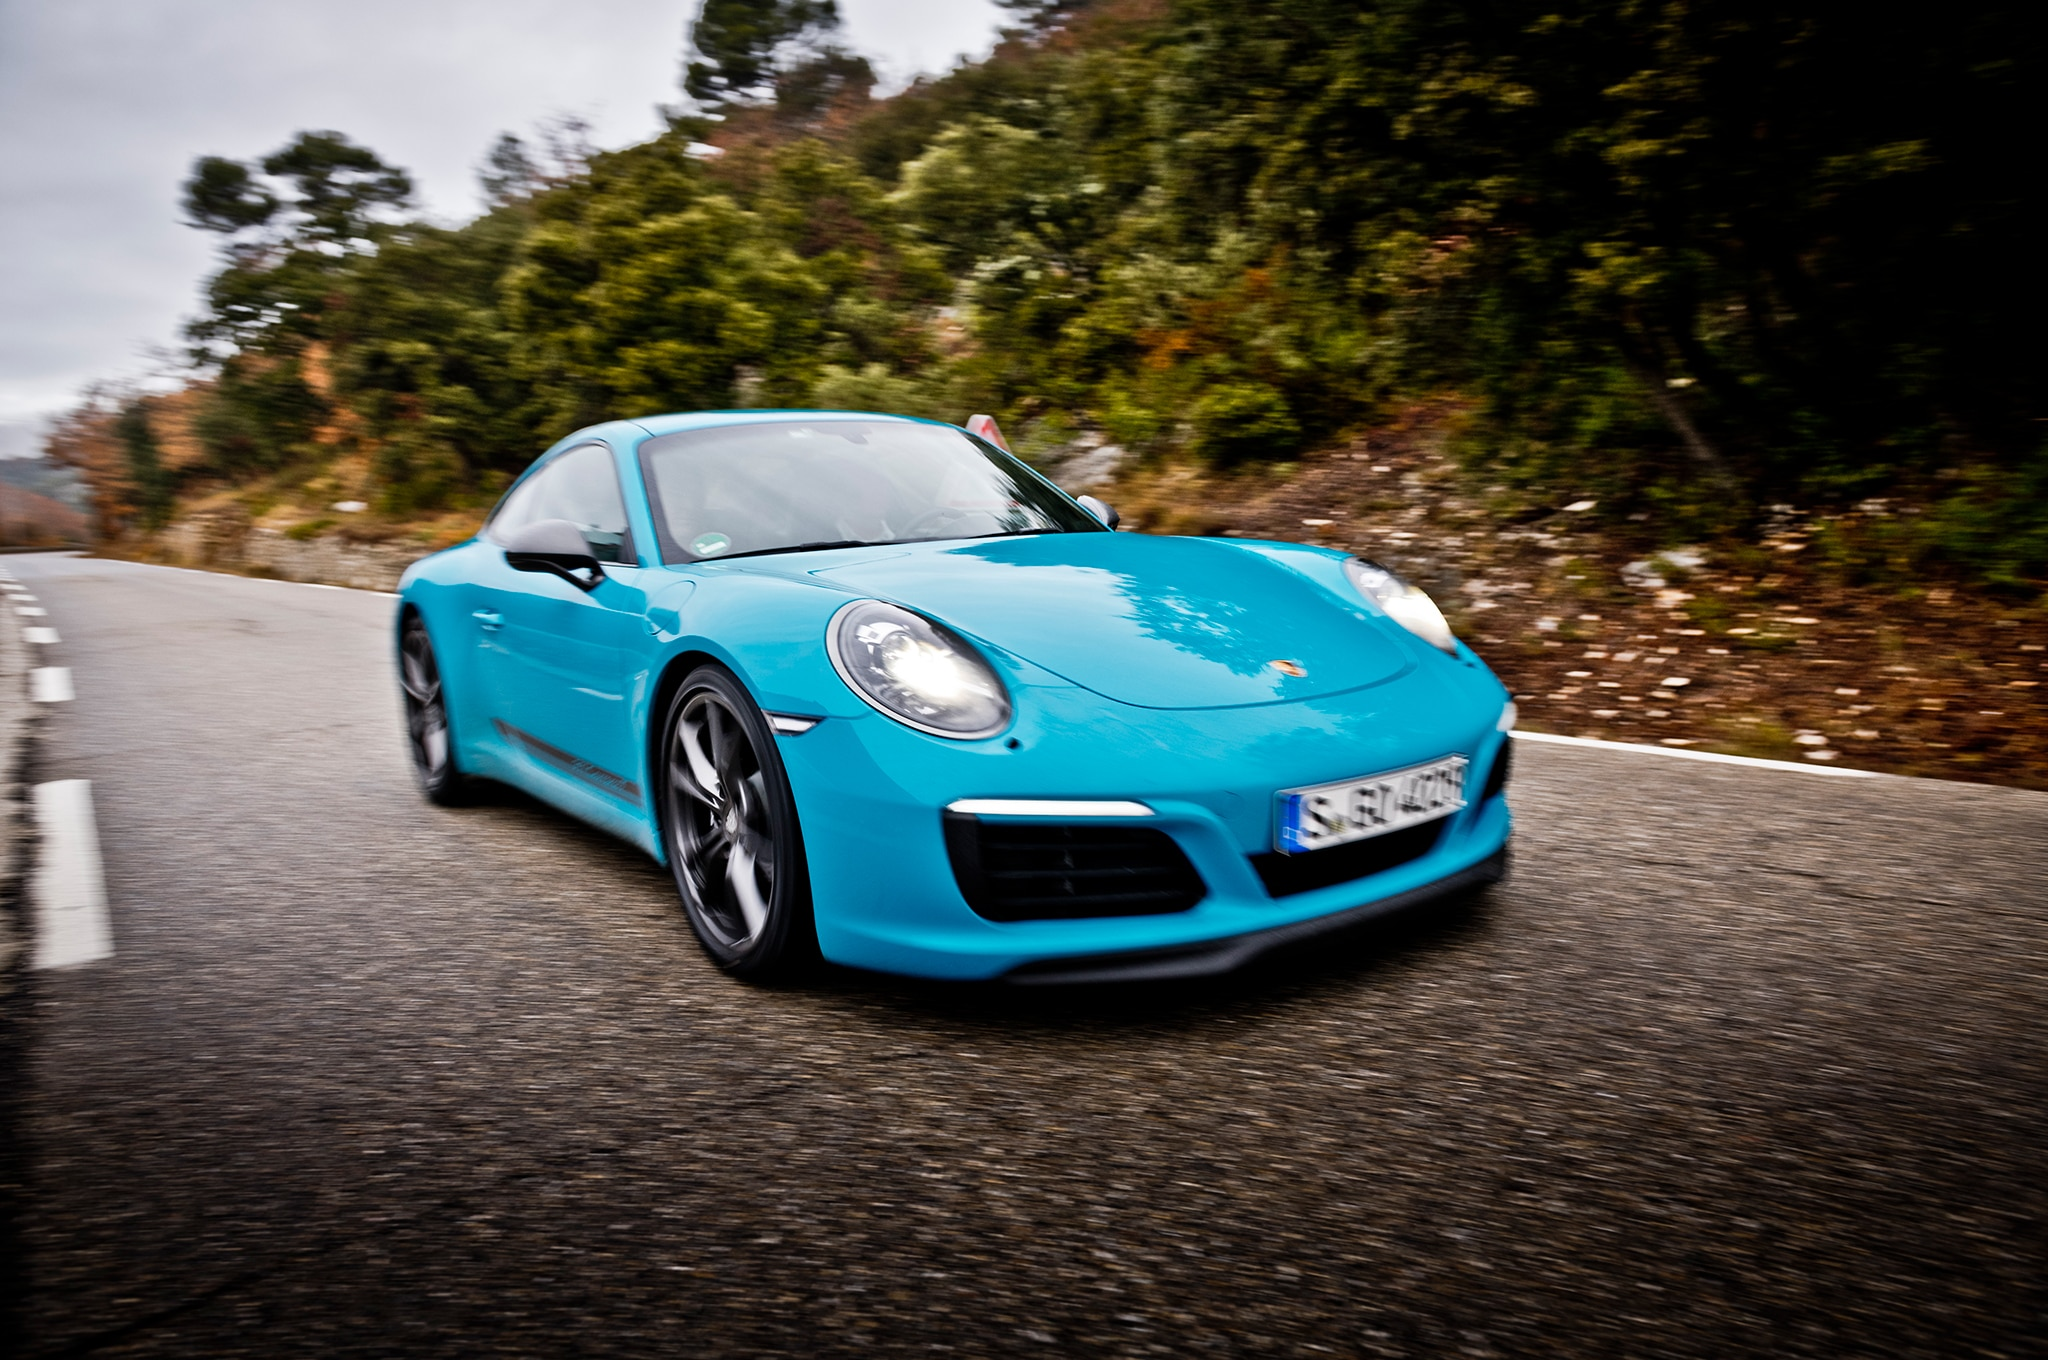 2018 Porsche 911 Carrera T Front Three Quarter In Motion 16